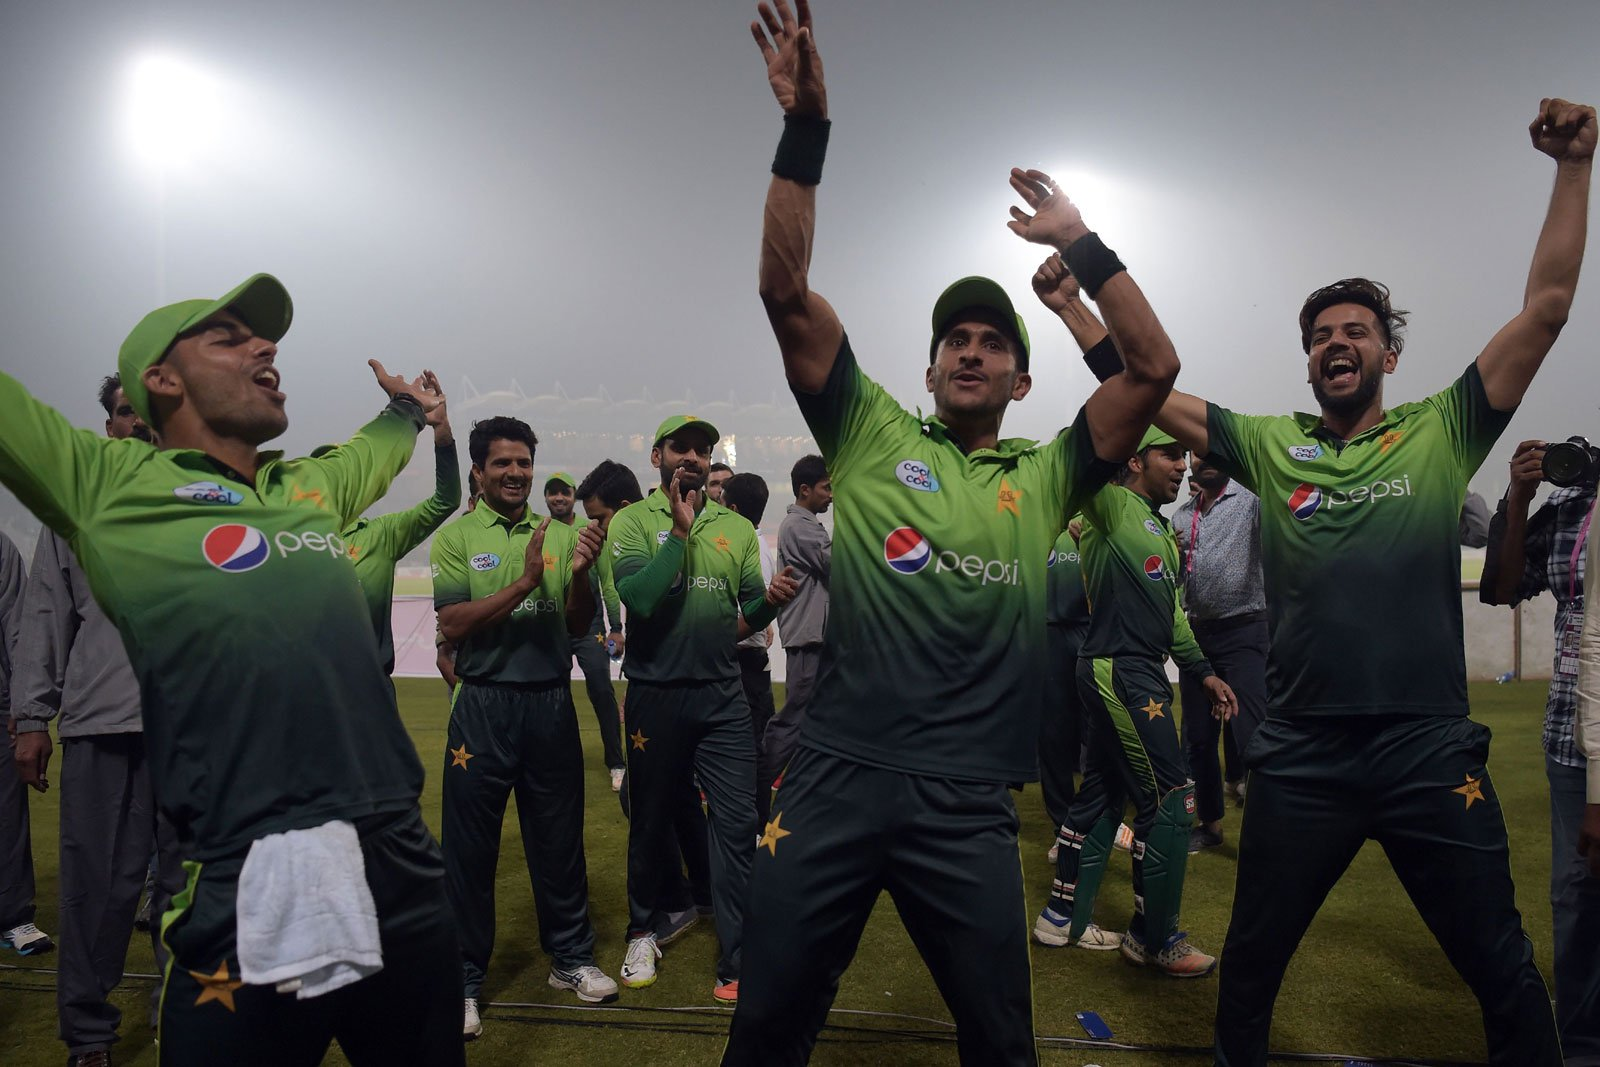 Pakistani cricket players celebrate after winning the third and final T20 cricket match against Sri Lanka at  Gaddafi Cricket Stadium in Lahore. Photo: AFP